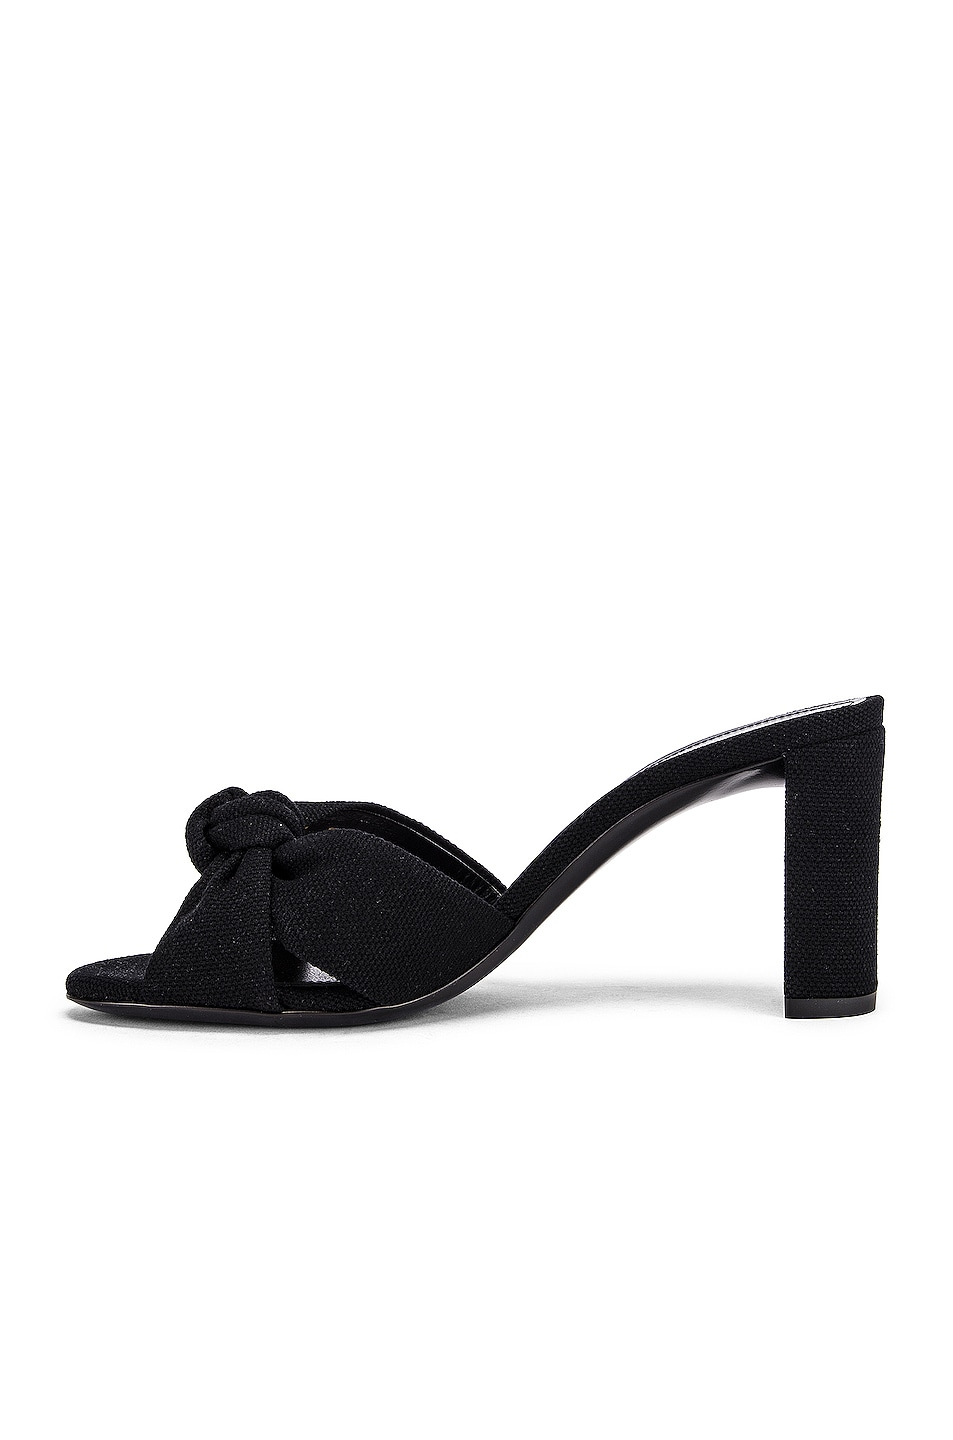 Image 5 of Saint Laurent Loulou Mule Sandals in Nero